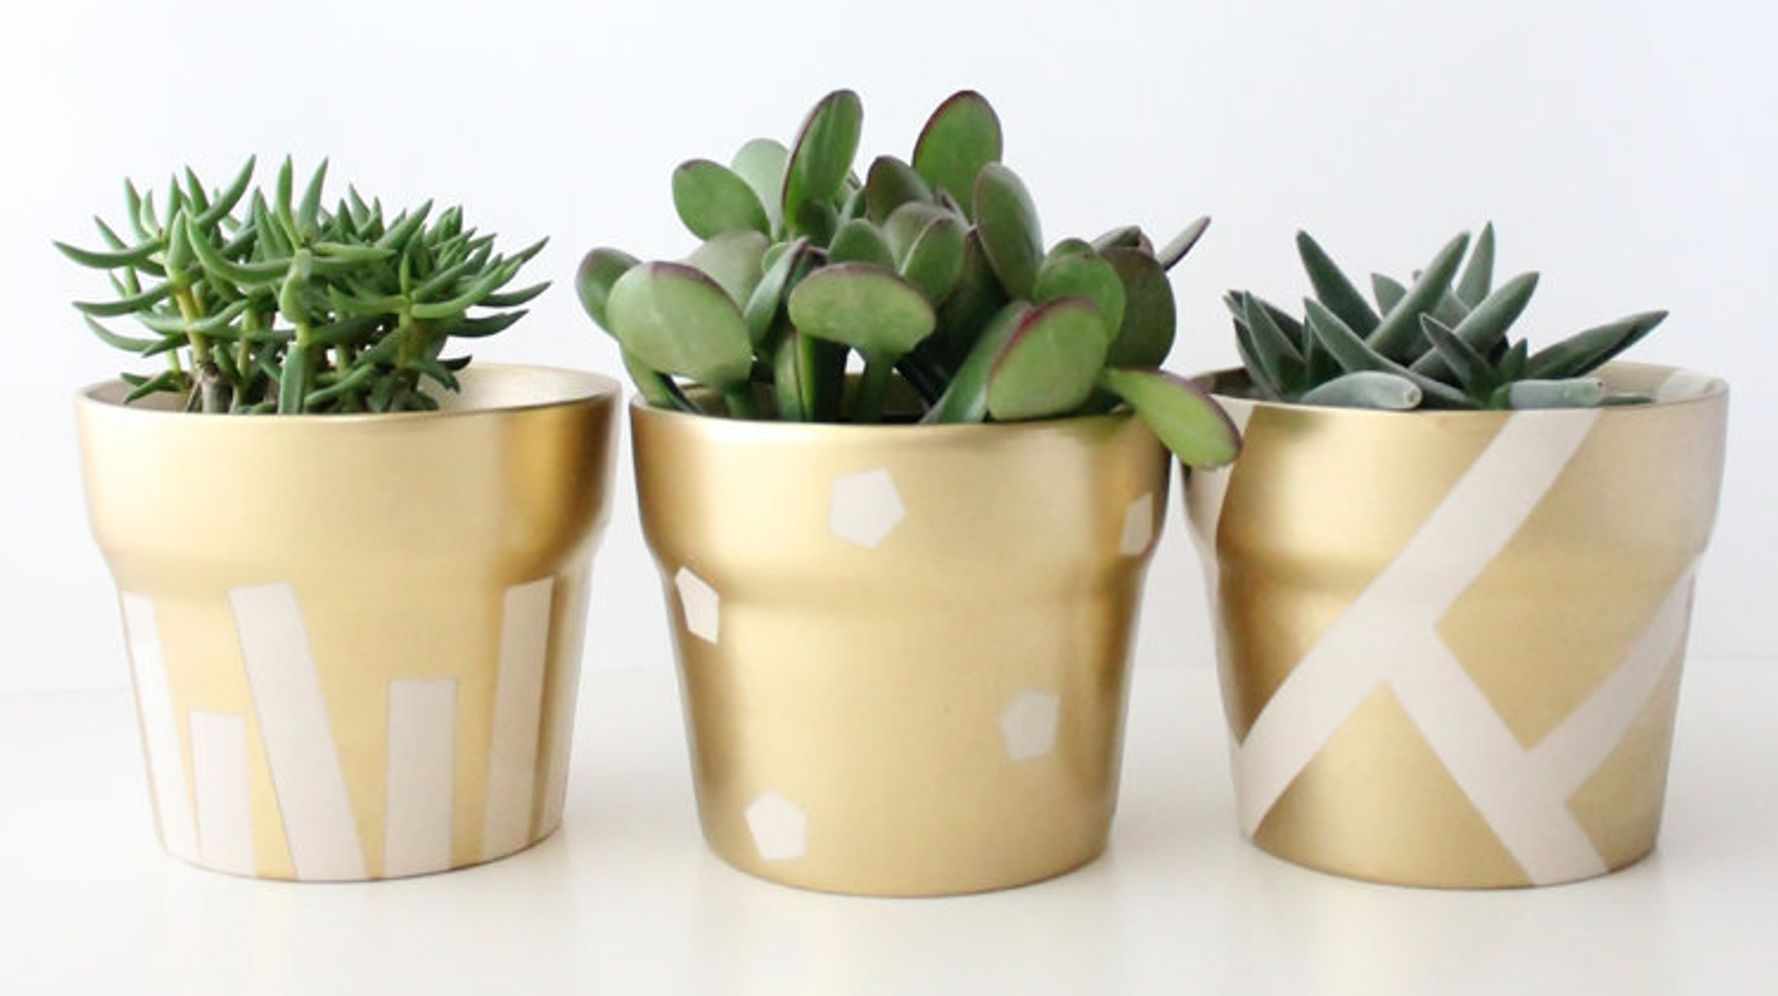 8 Easy DIY Projects To Try This Weekend